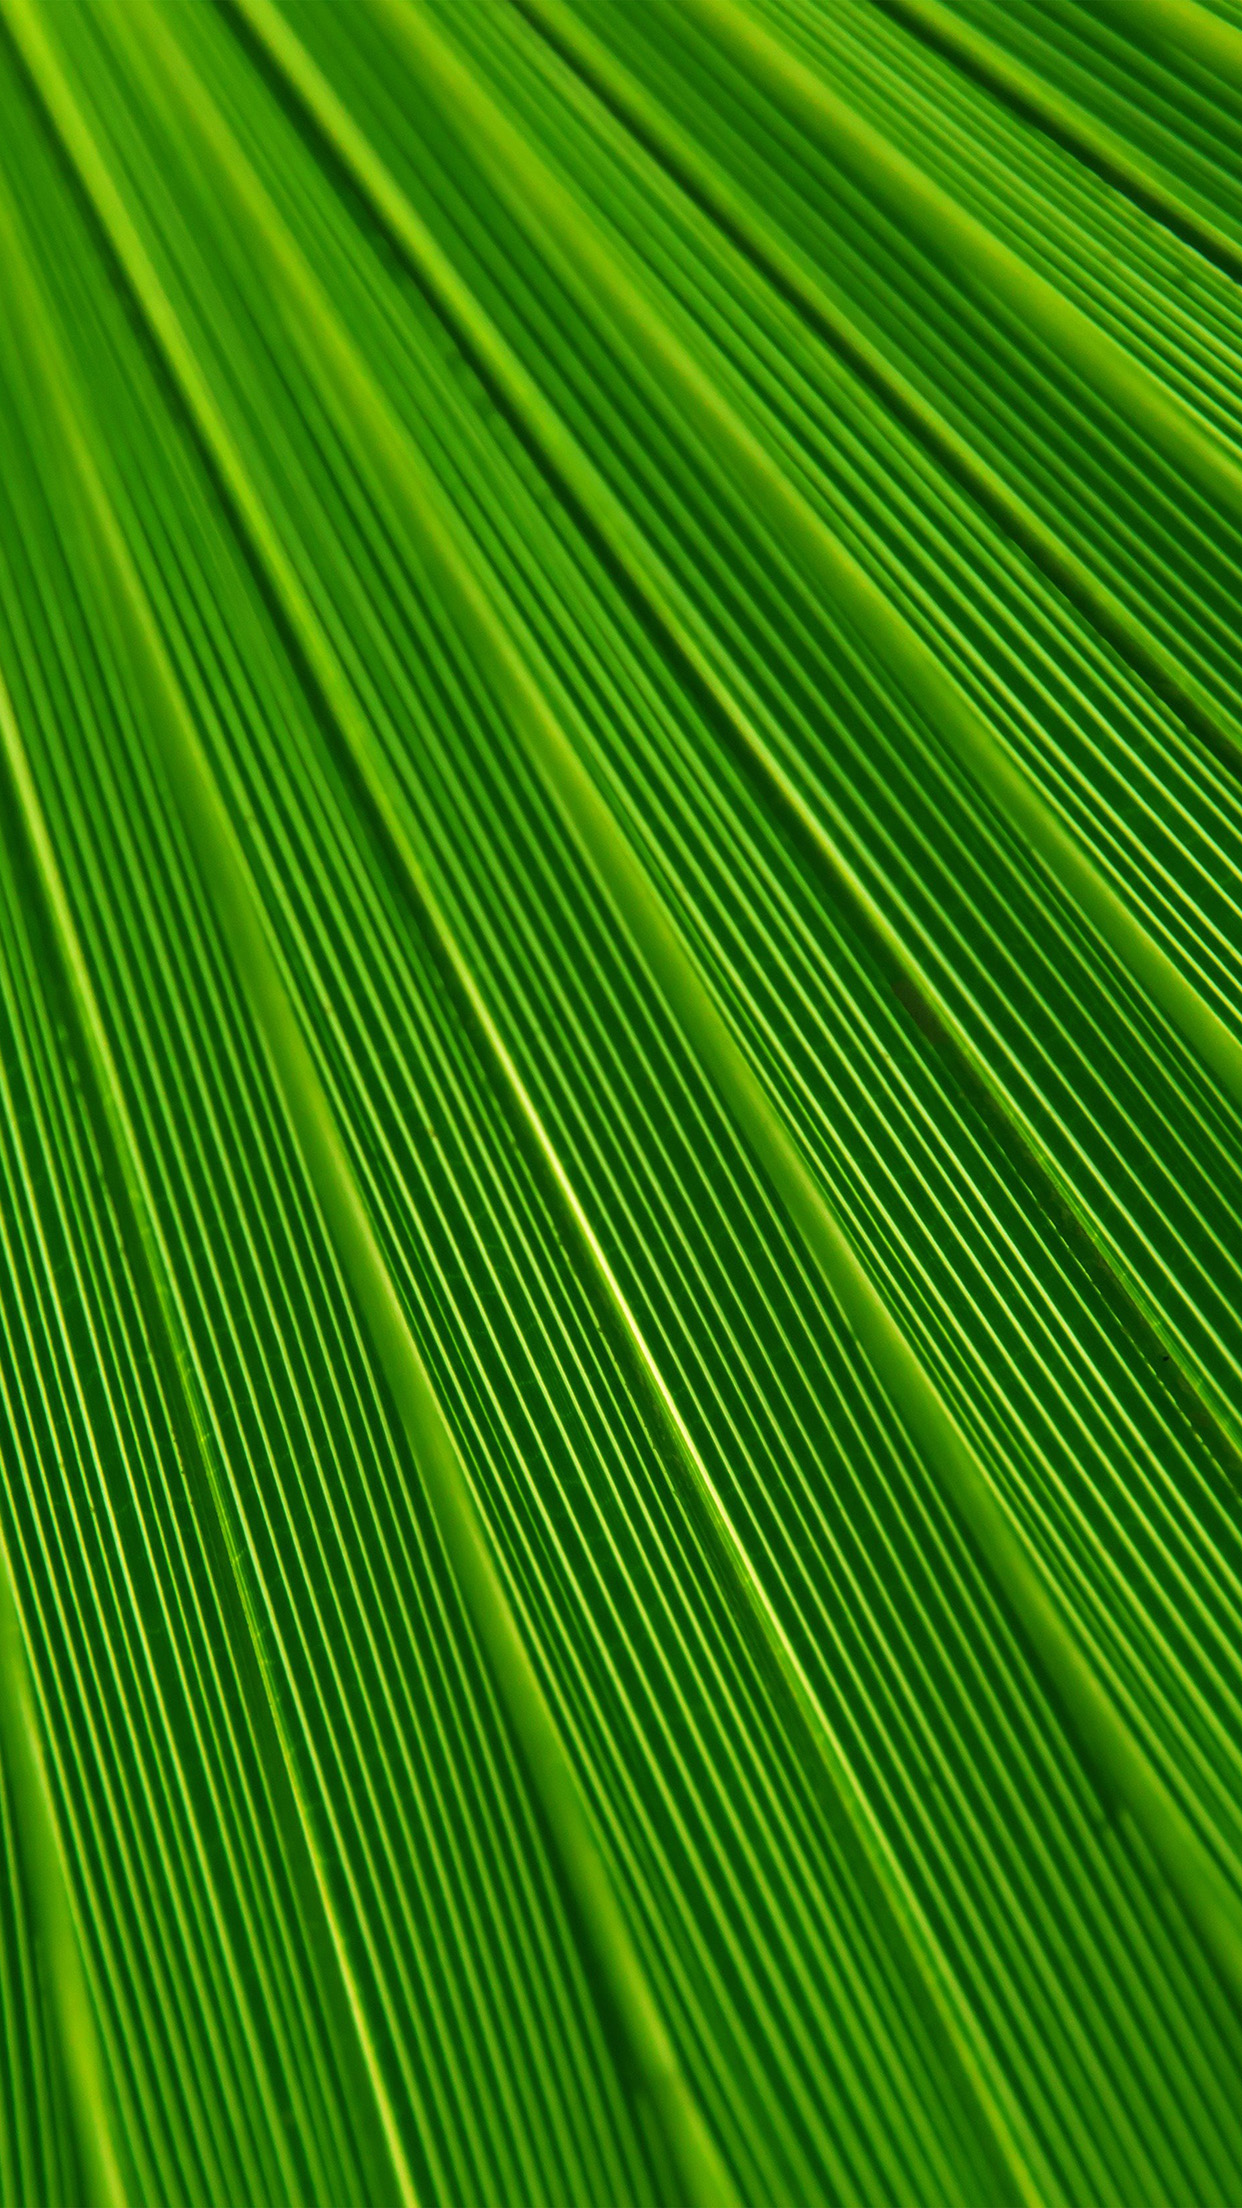 Best Black Wallpaper For Iphone Vn29 Leaf Green Surface Texture Nature Pattern